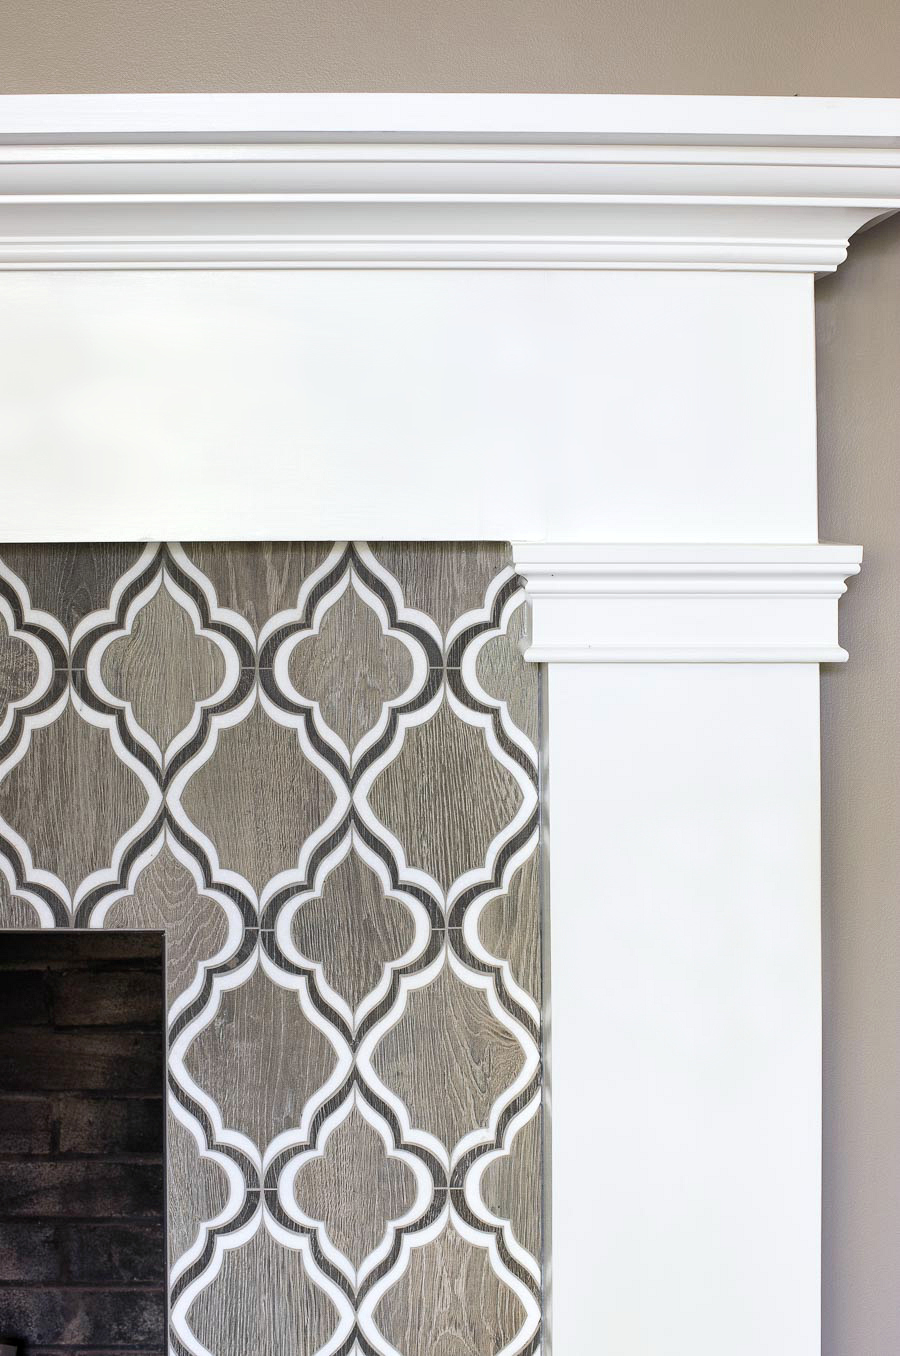 Our fireplace tile with Polyblend Natural Gray grout